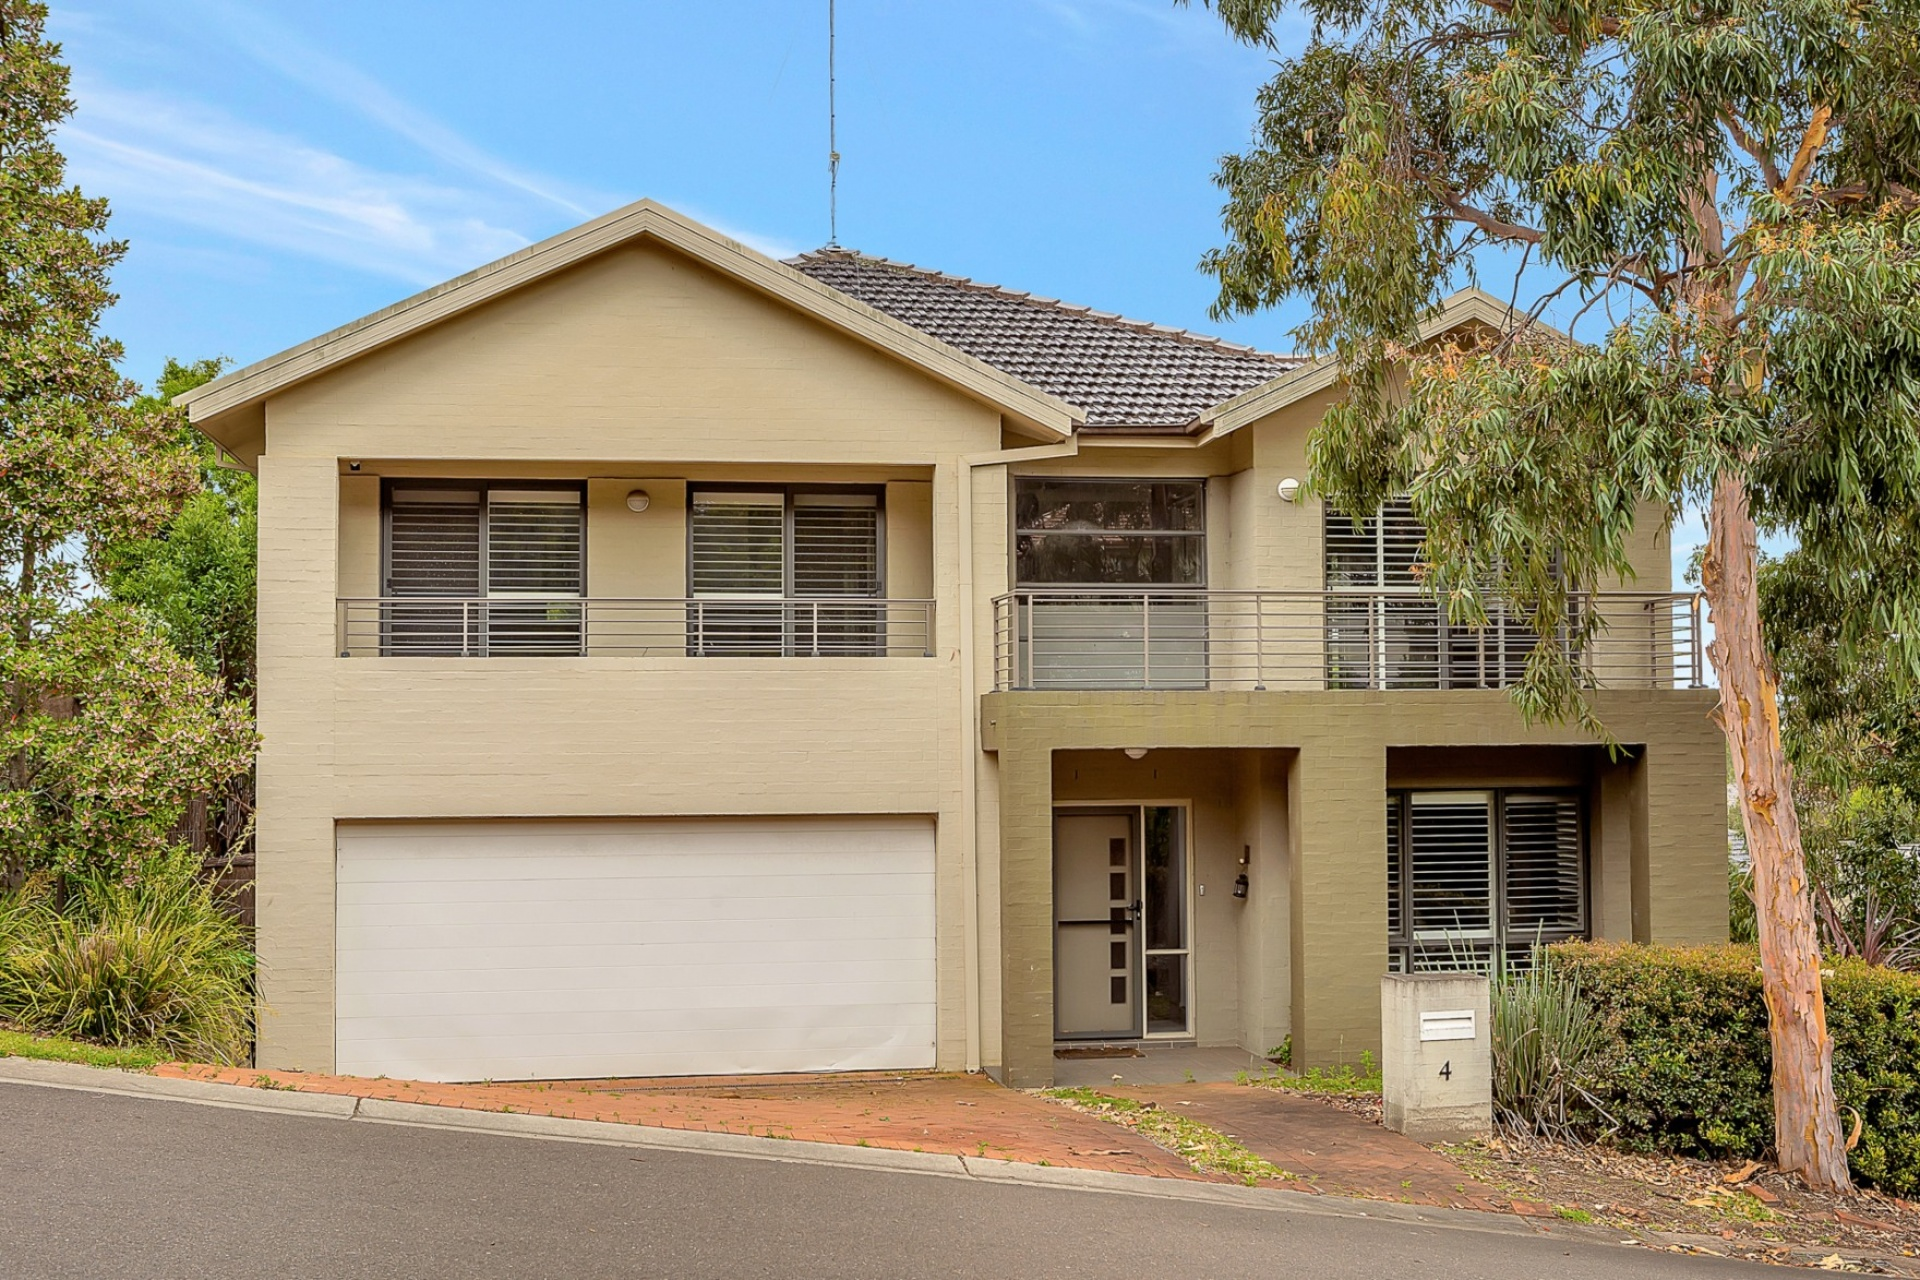 4 Rooms, House, Leased, Sherbrooke Crescent, 2 Bathrooms, Listing ID 1473, Castle Hill , NSW, Australia, 2154,